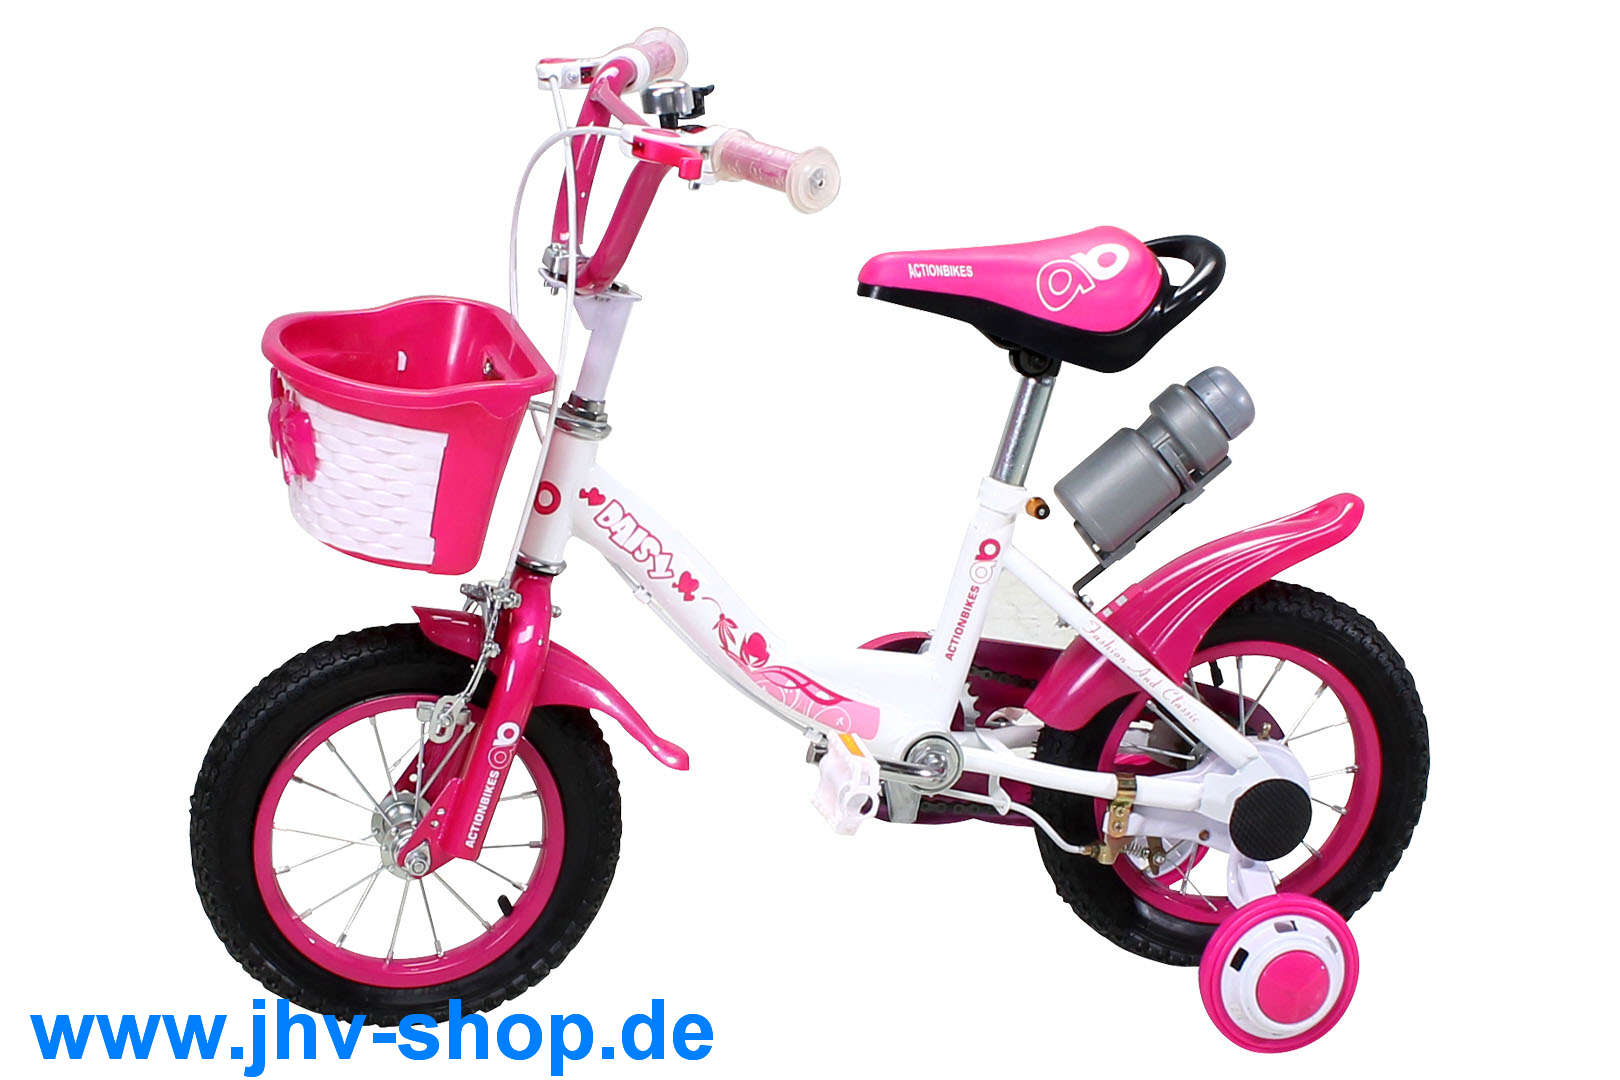 jhv shop quad bikes und mehr kinder dreirad fahrrad bikes. Black Bedroom Furniture Sets. Home Design Ideas